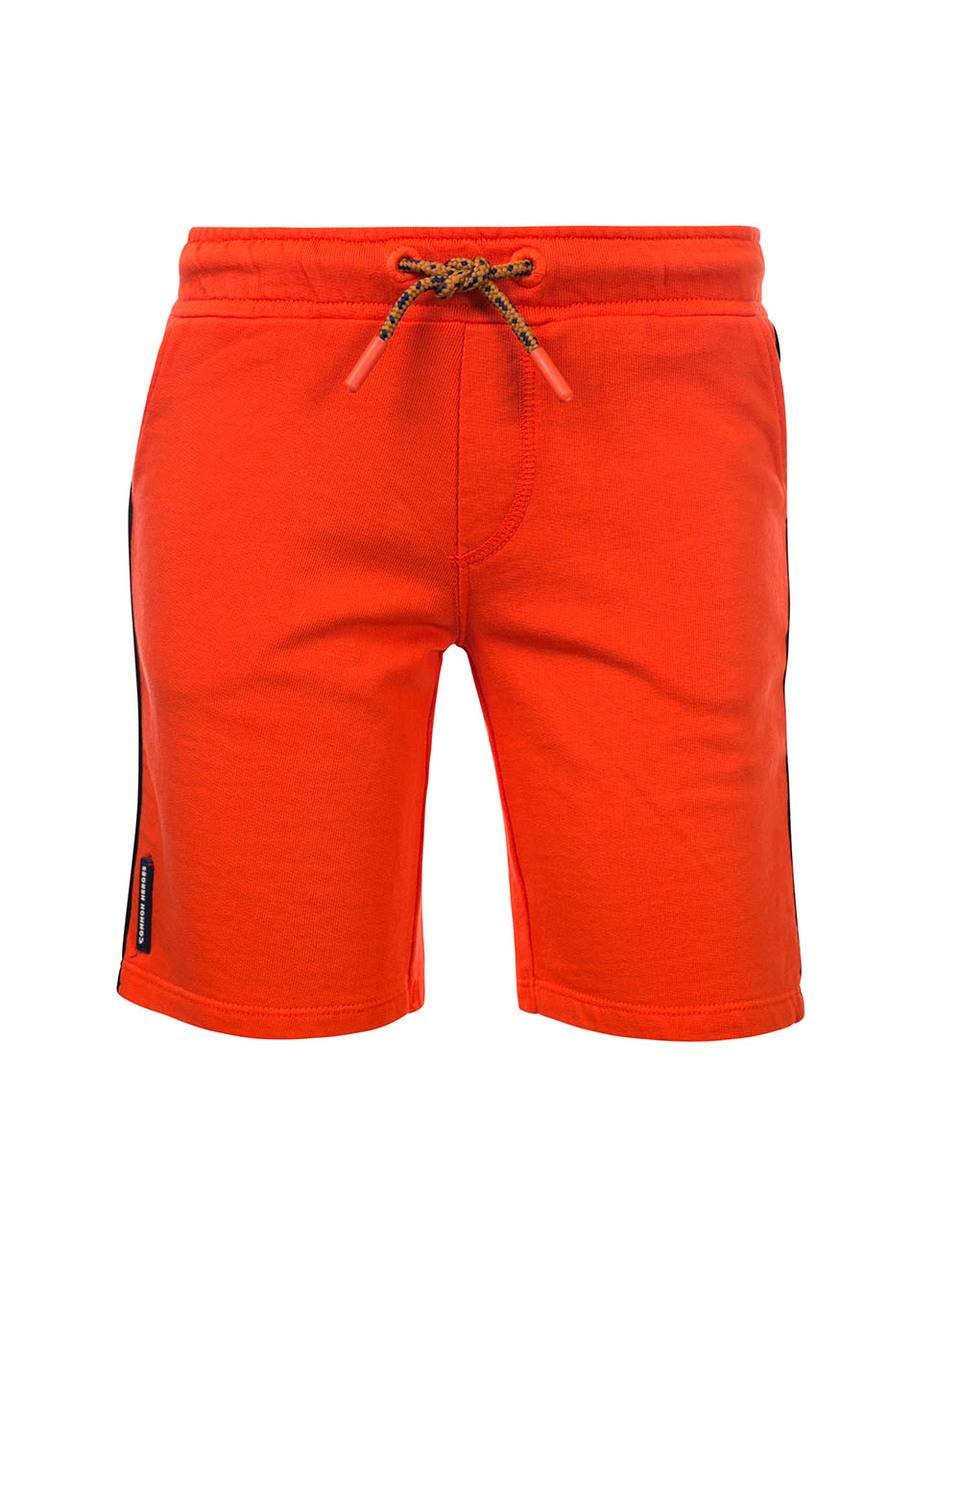 Common Heroes sweatshort Boyd